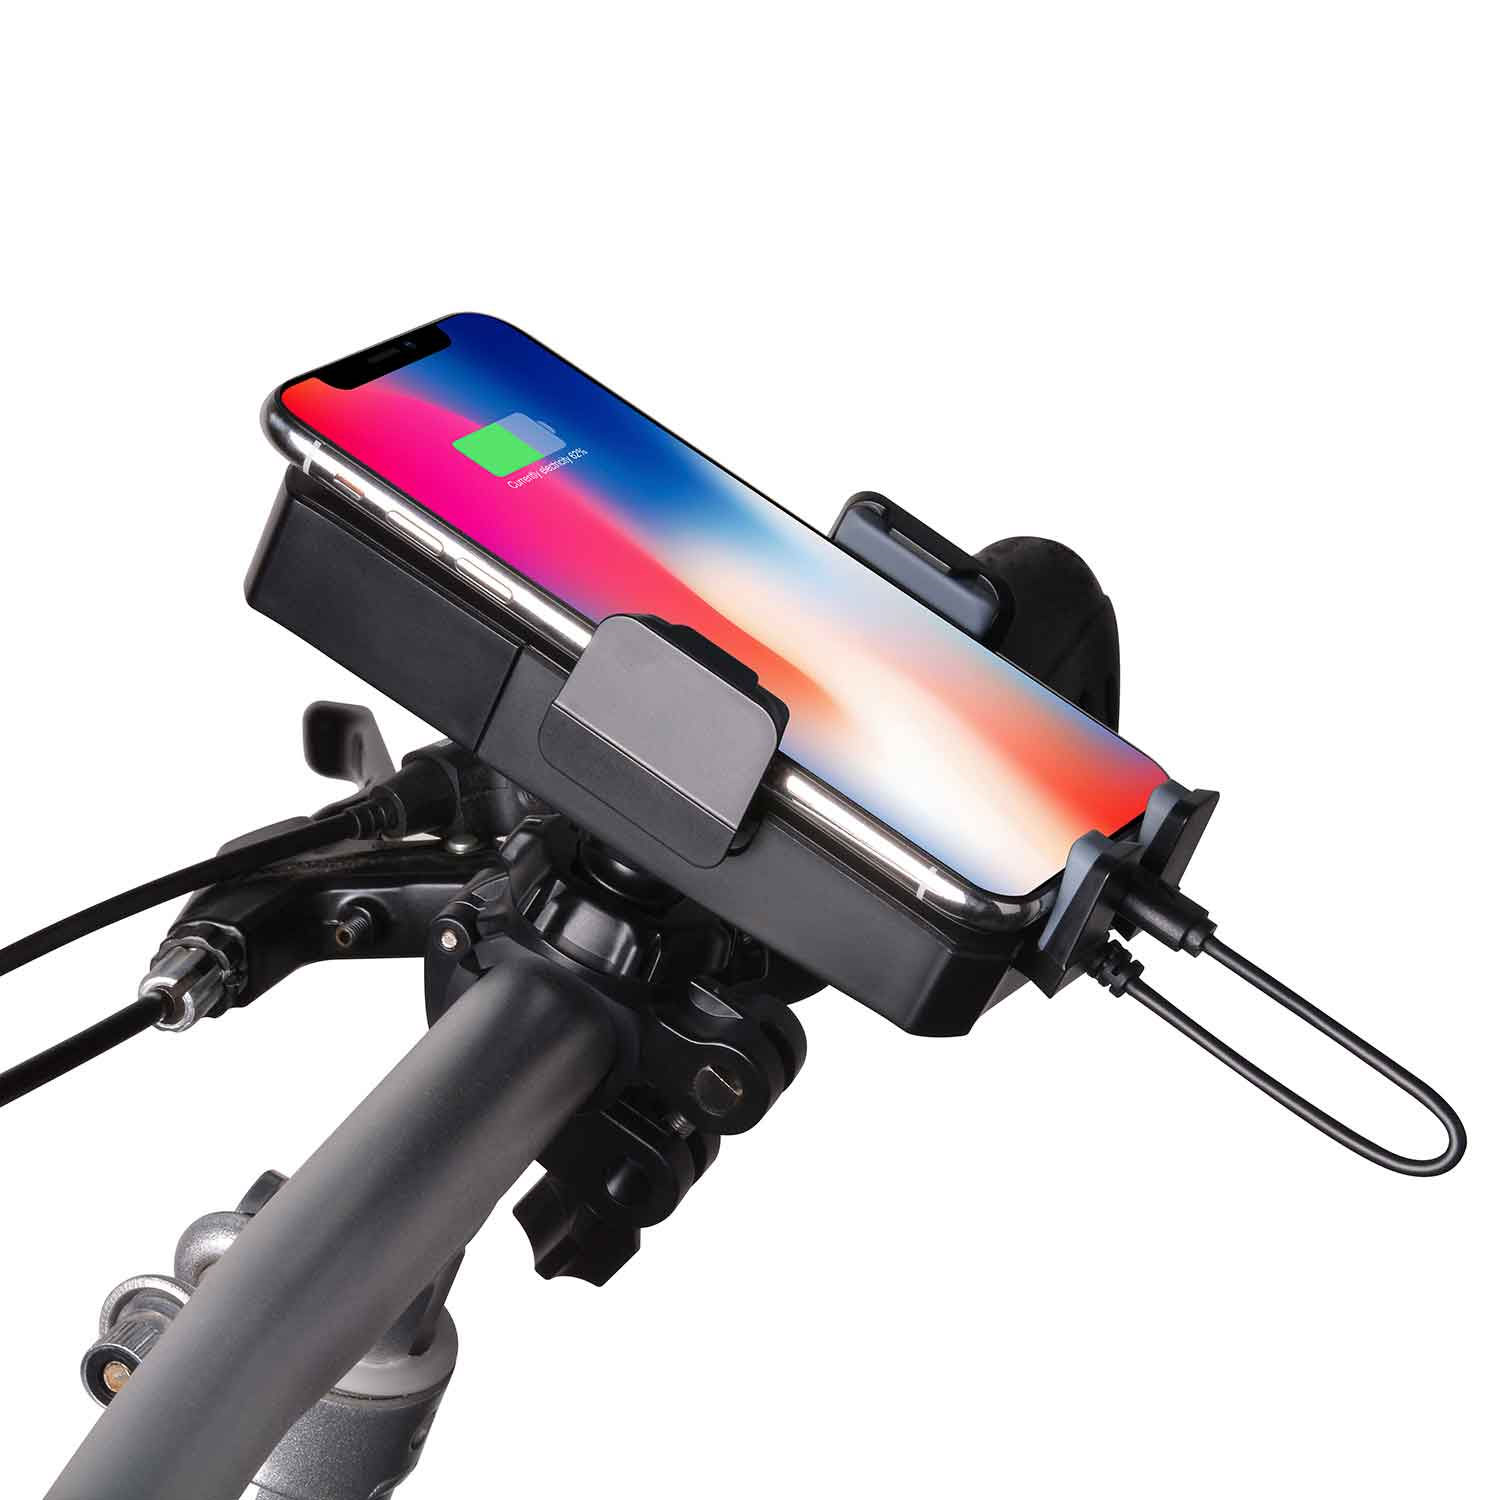 grandshine Rechargeable Phone Holder (3).JPG